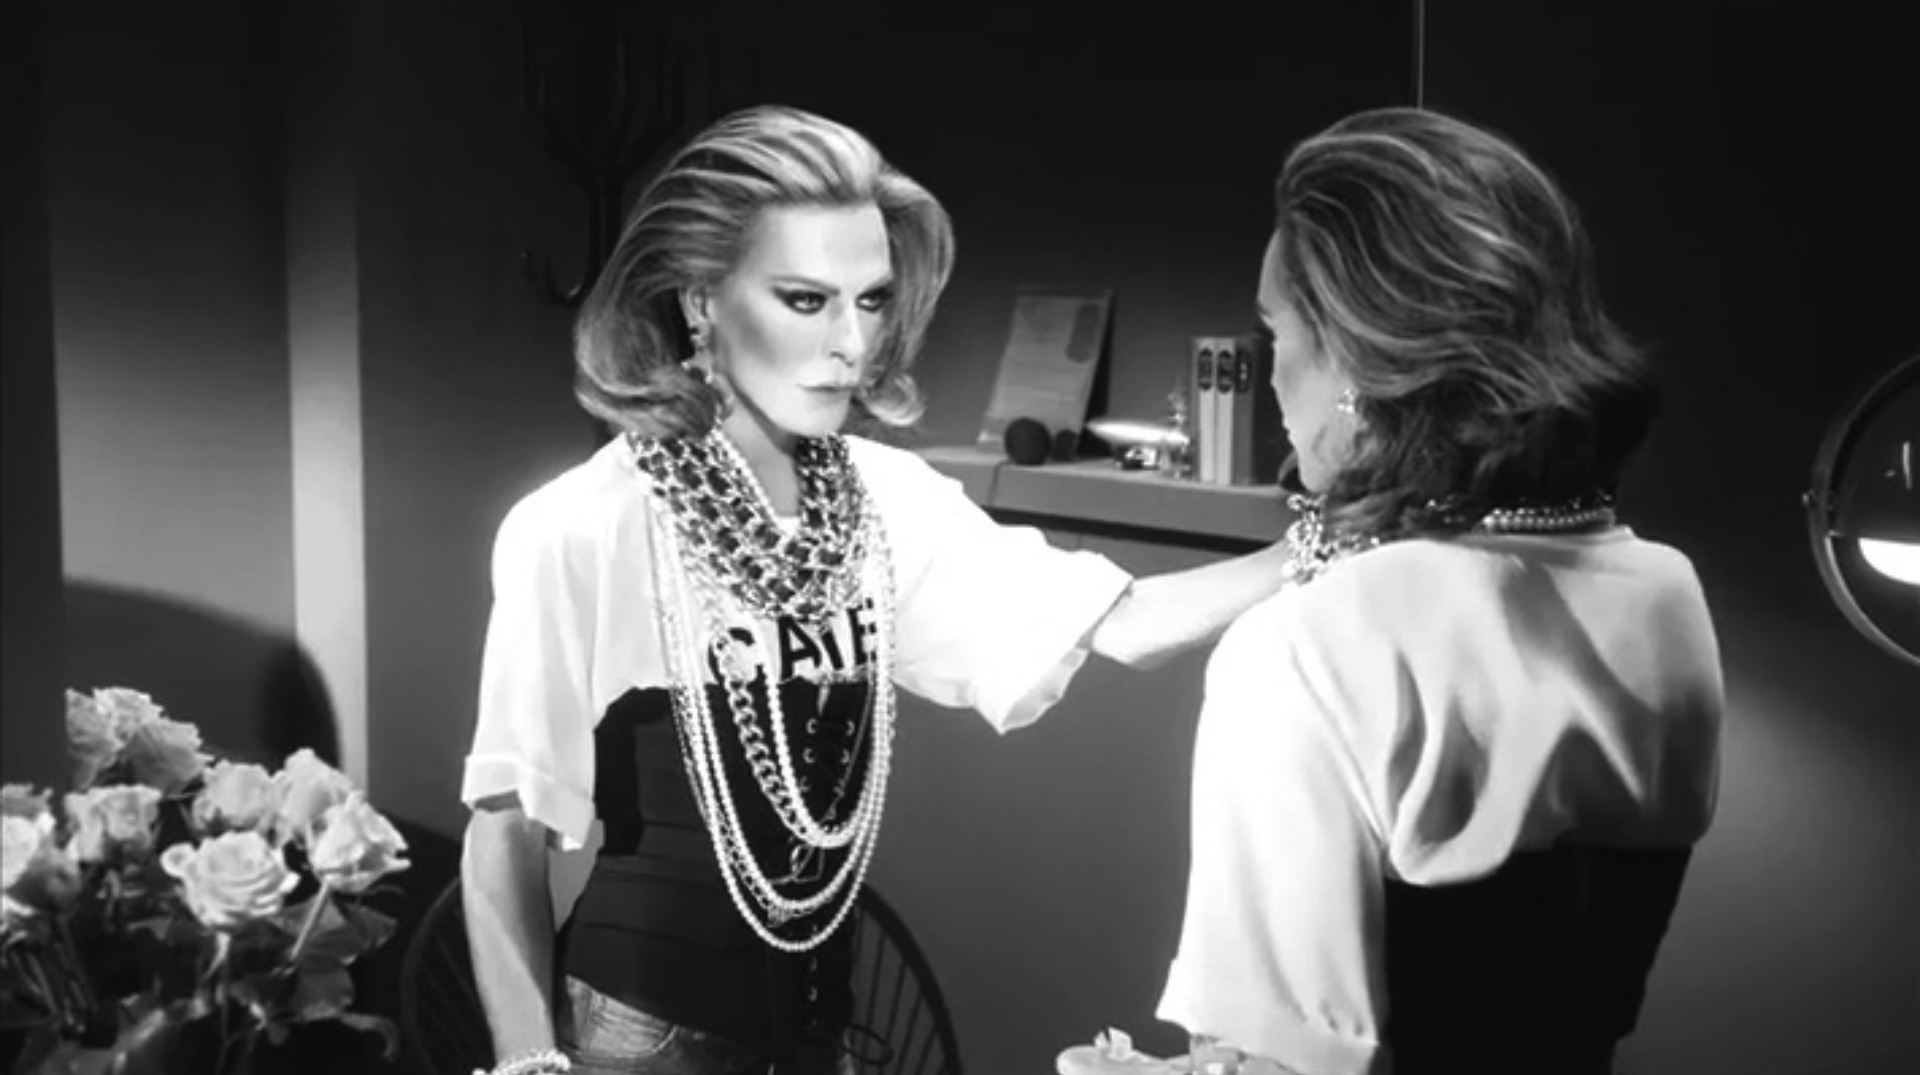 DSQUARED, Behind the Mirror –Mert and Marcus + Charlie Harvey at the Whitehouse Post London